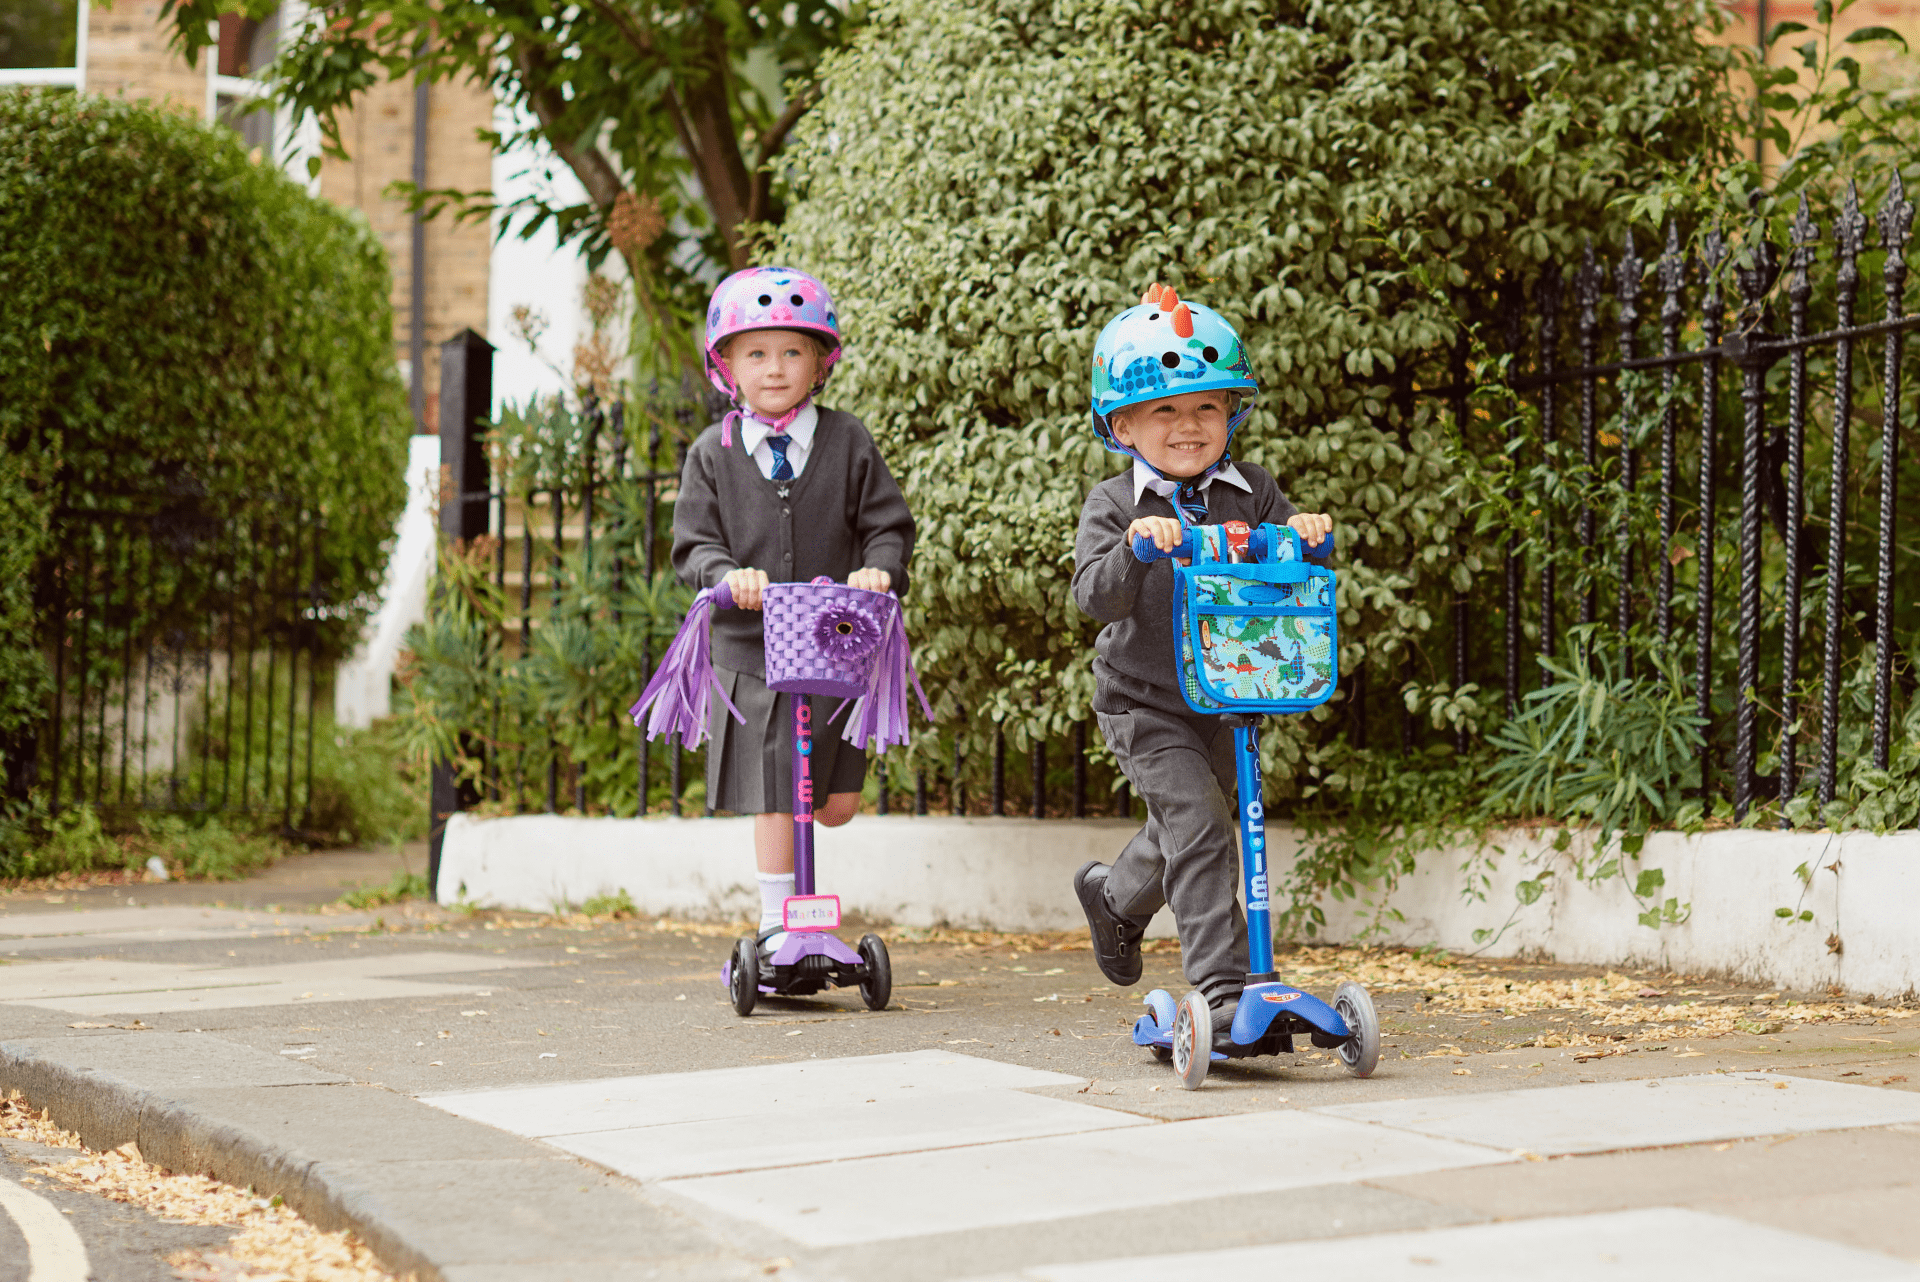 Scooting Has Changed My Life as a Parent | Sustrans Big Pedal, image%, daily-dad%